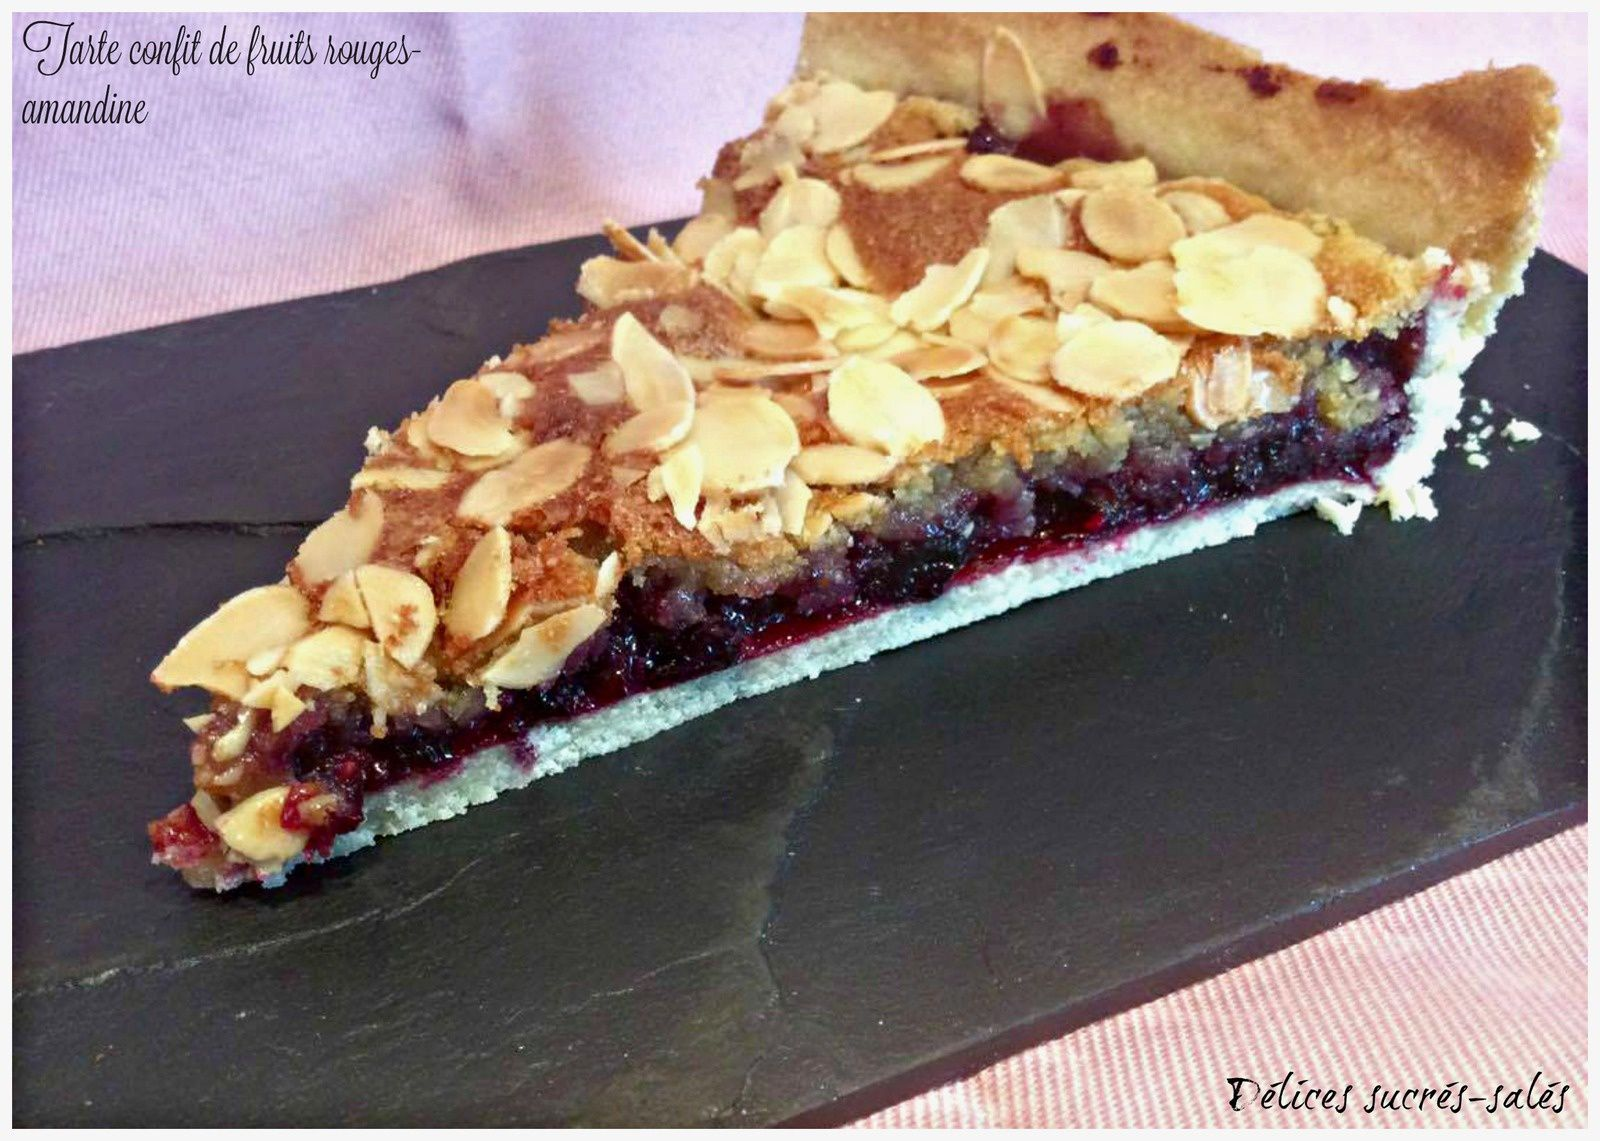 Tarte confit de fruits rouges-amandine